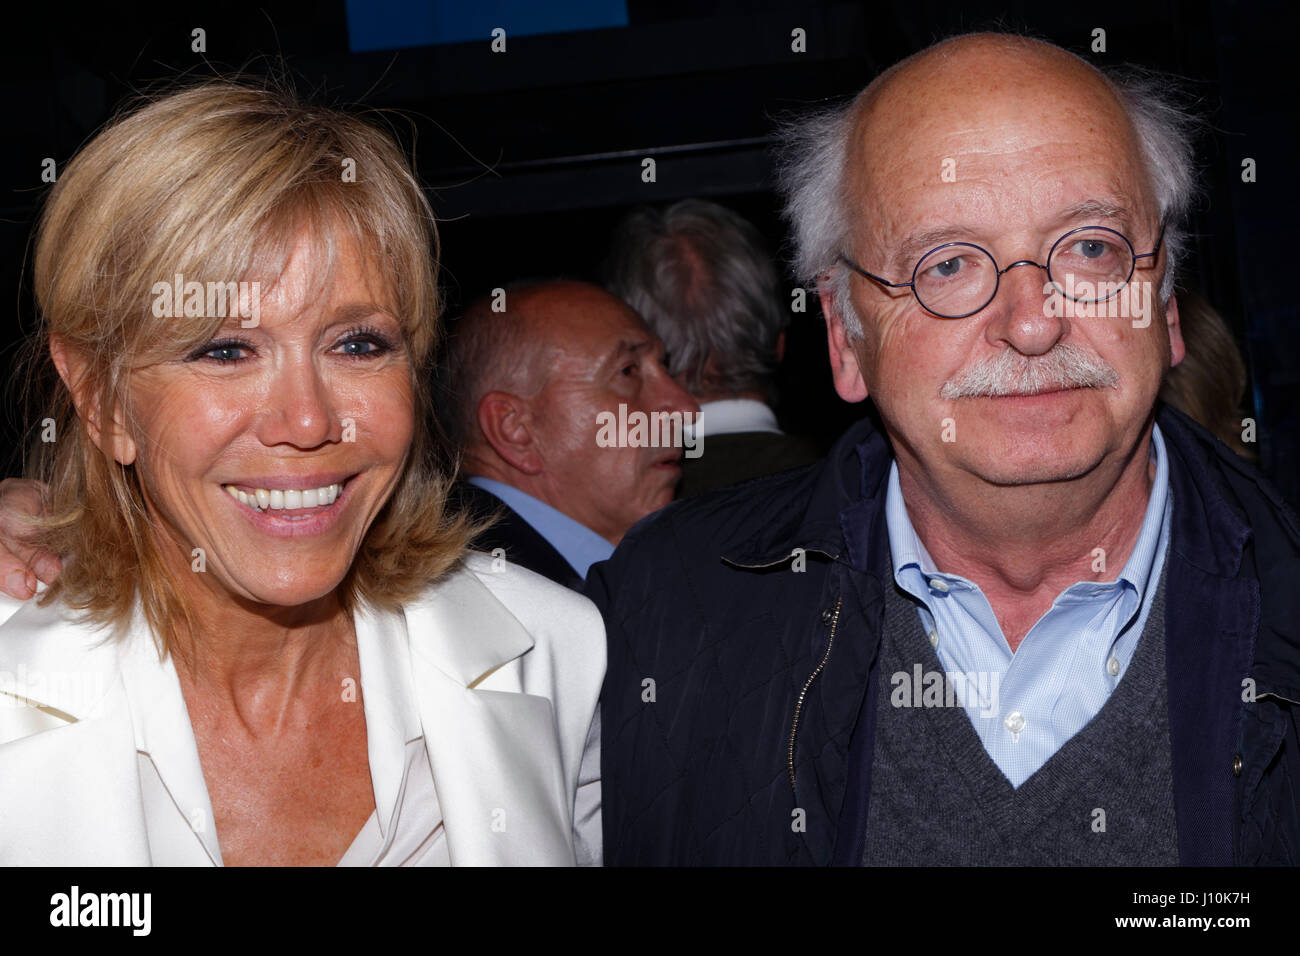 France elections 2017 live - Brigitte Macron And Erik Orsenna Attend Last Big Meeting Of Emmanuel Macron In Paris Bercy Before The First Round Of The French Presidential Election